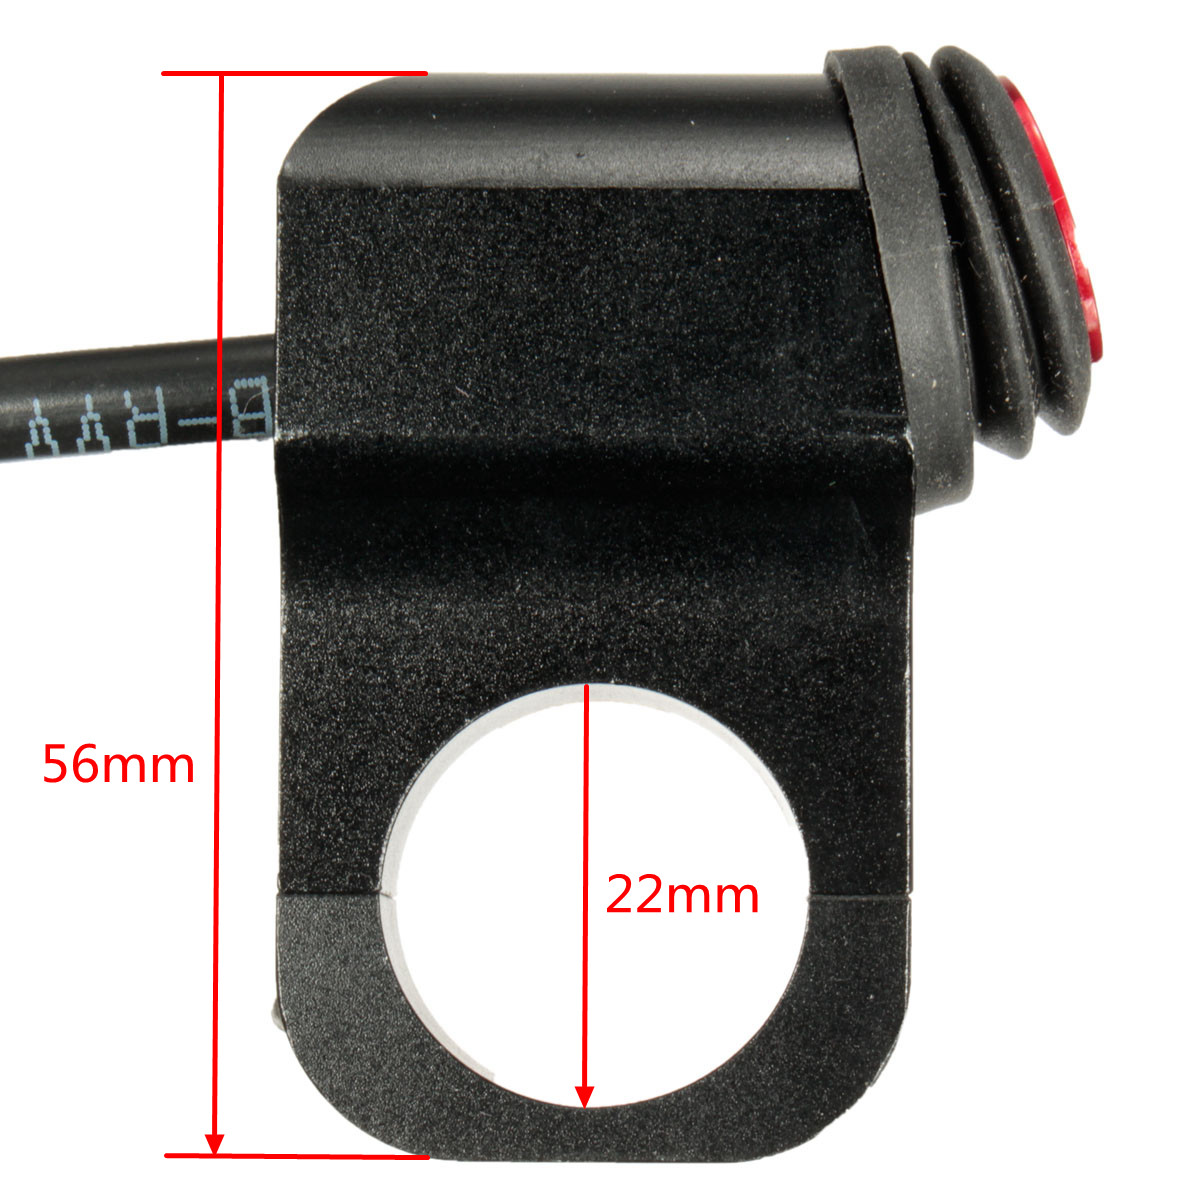 12V 16A Motorcycle Handlebar Grip Light Switch Aluminum Alloy Waterproof with Indicator